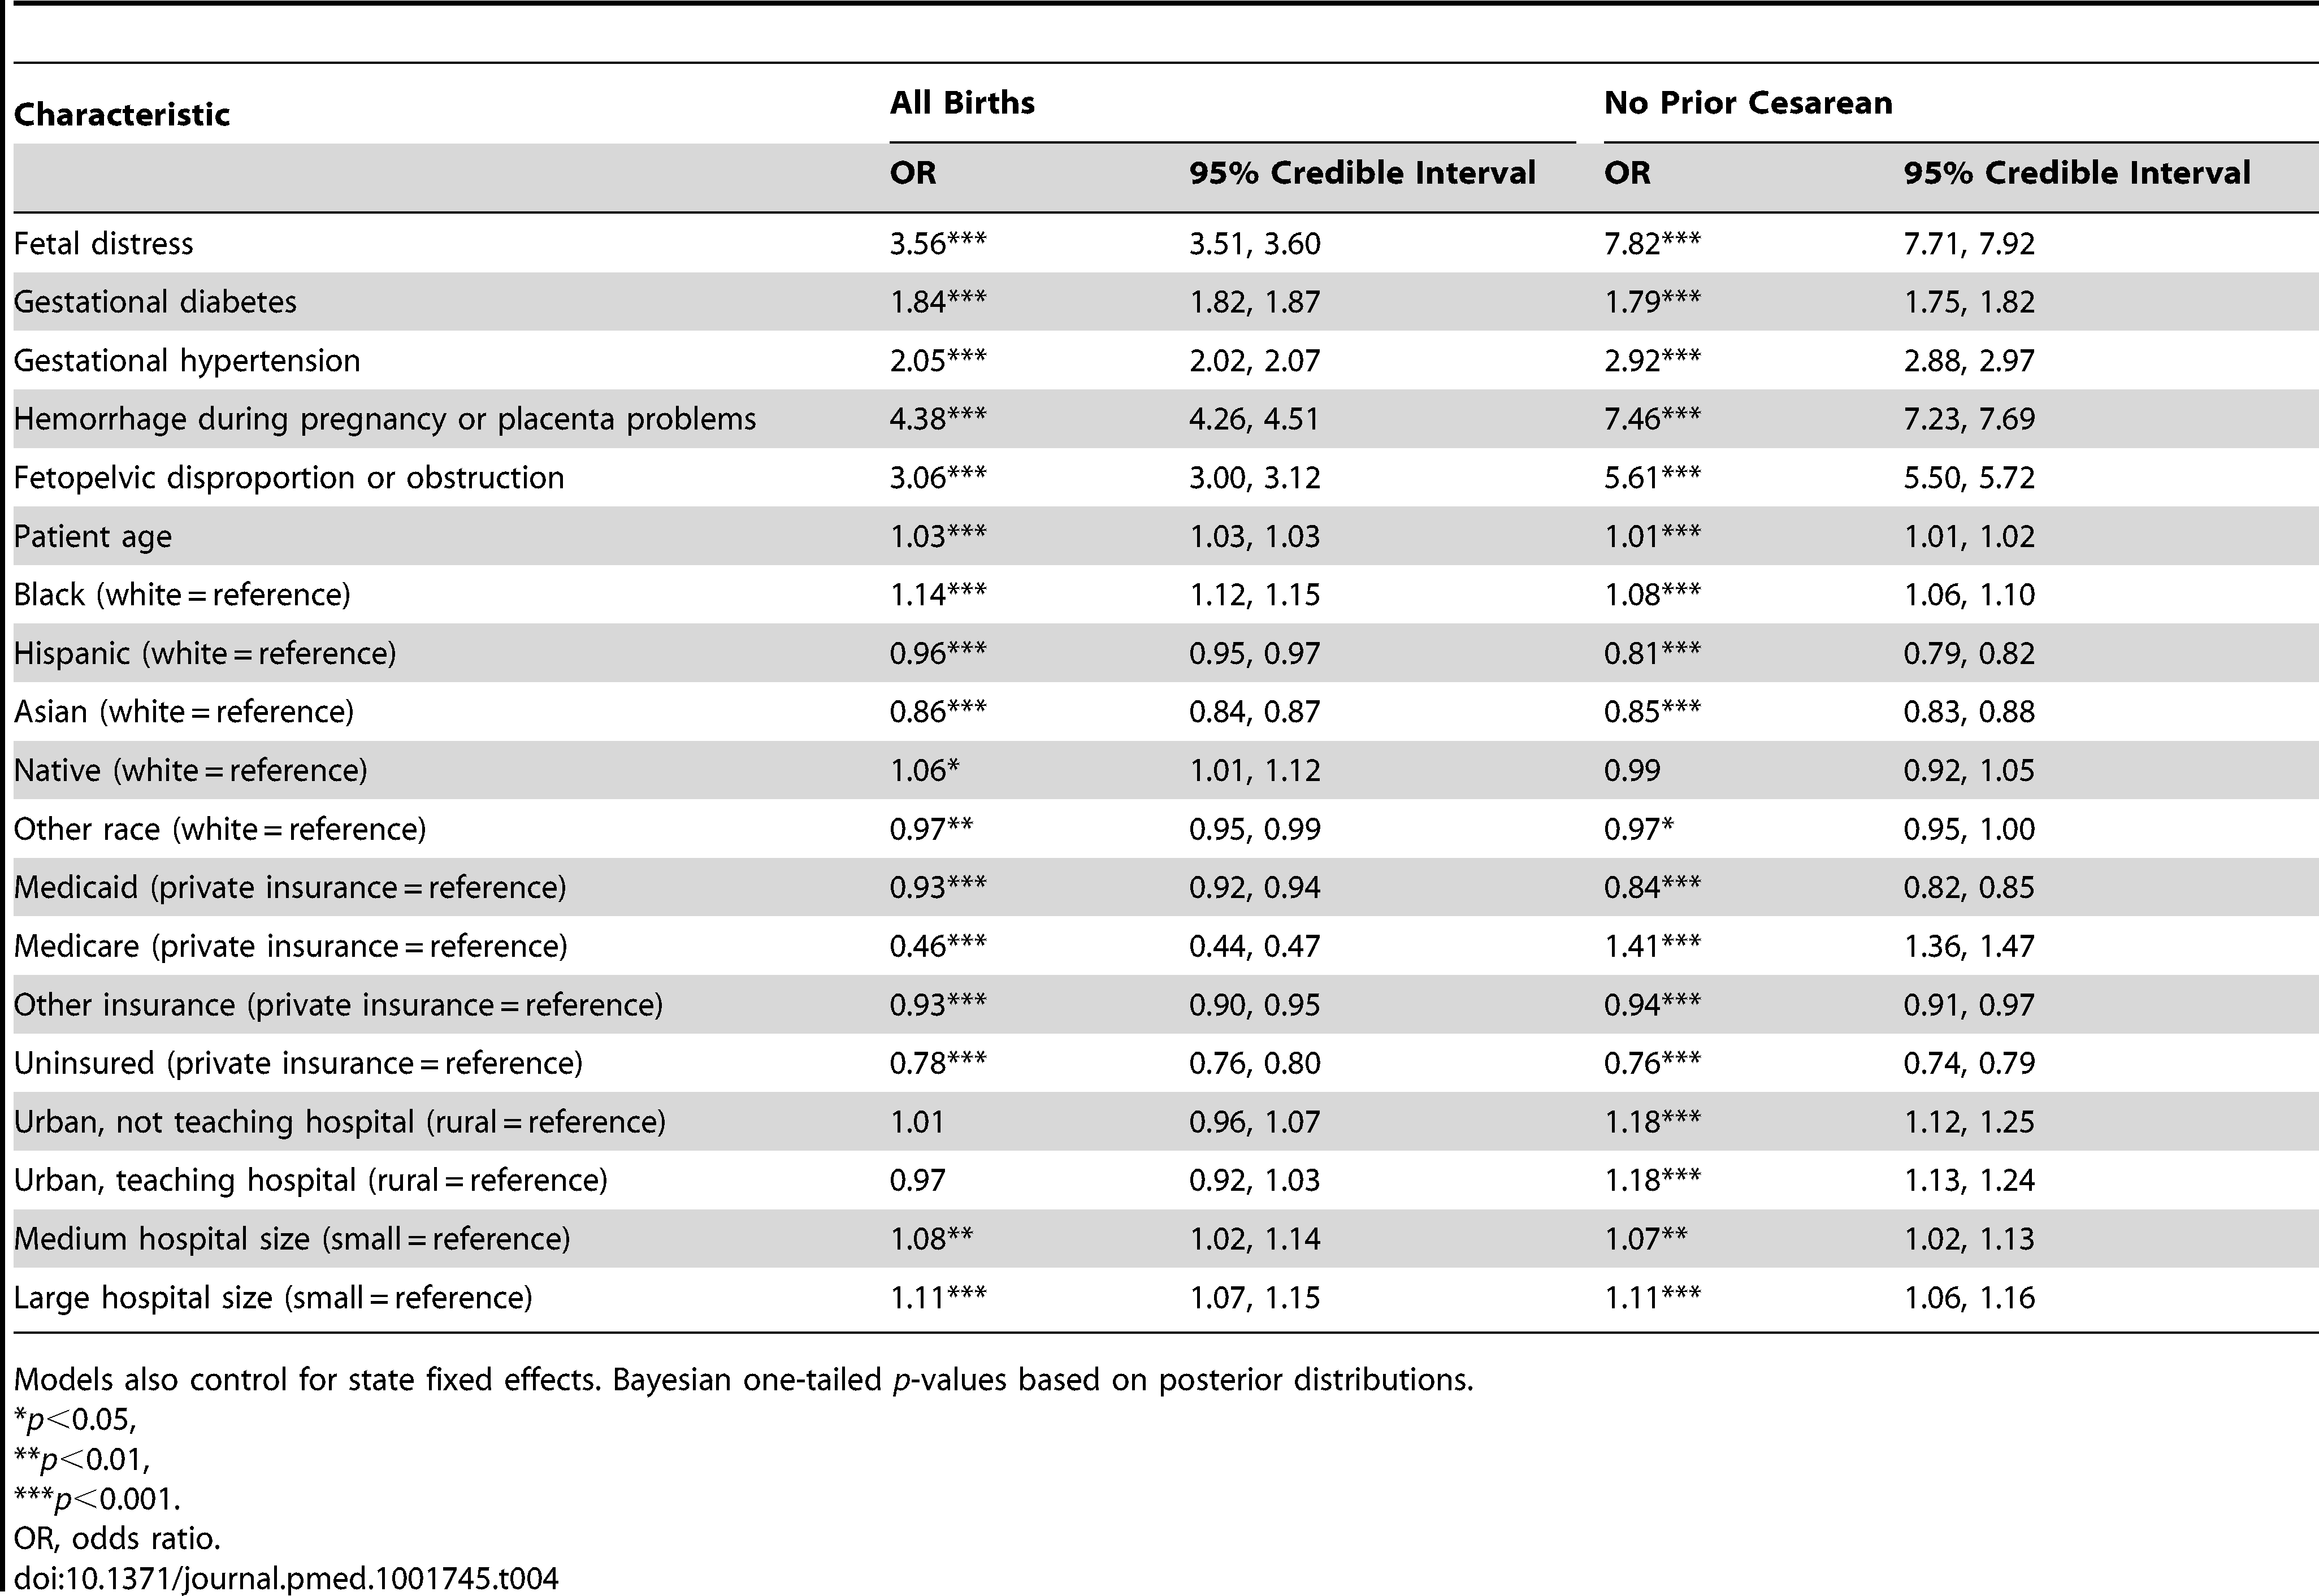 Parameter estimates from multilevel models of the association between patient and hospital covariates with odds of cesarean delivery, overall and among women with no prior cesareans.